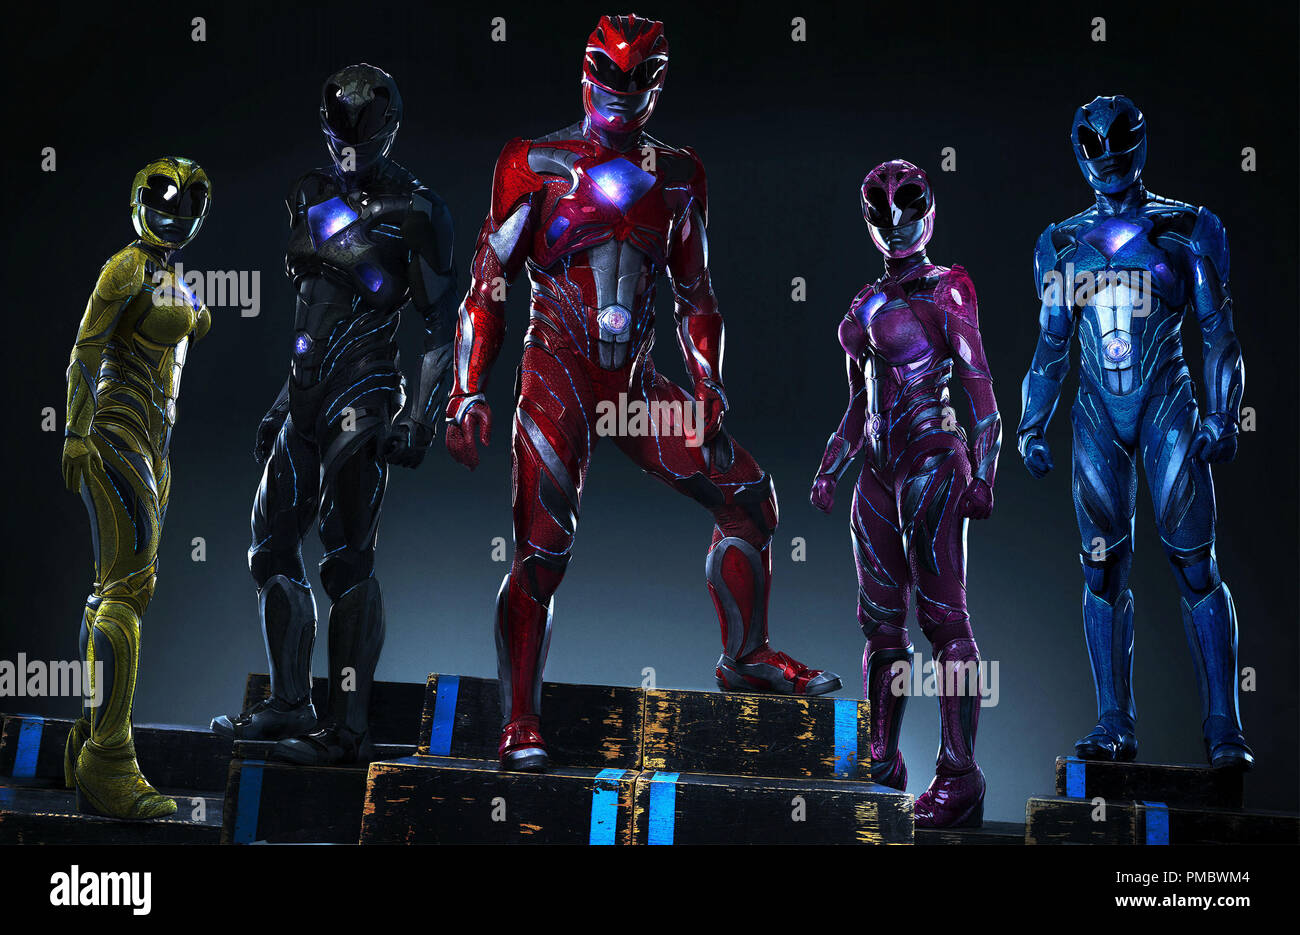 From left to right: Trini the Yellow Ranger (Becky G), Zack the Black Ranger (Ludi Lin), Jason the Red Ranger (Dacre Montgomery), Kimberly the Pink Ranger (Naomi Scott) and Billy the Blue Ranger (RJ Cyler) in SABAN'S POWER RANGERS. (2017) Lions Gate - Stock Image